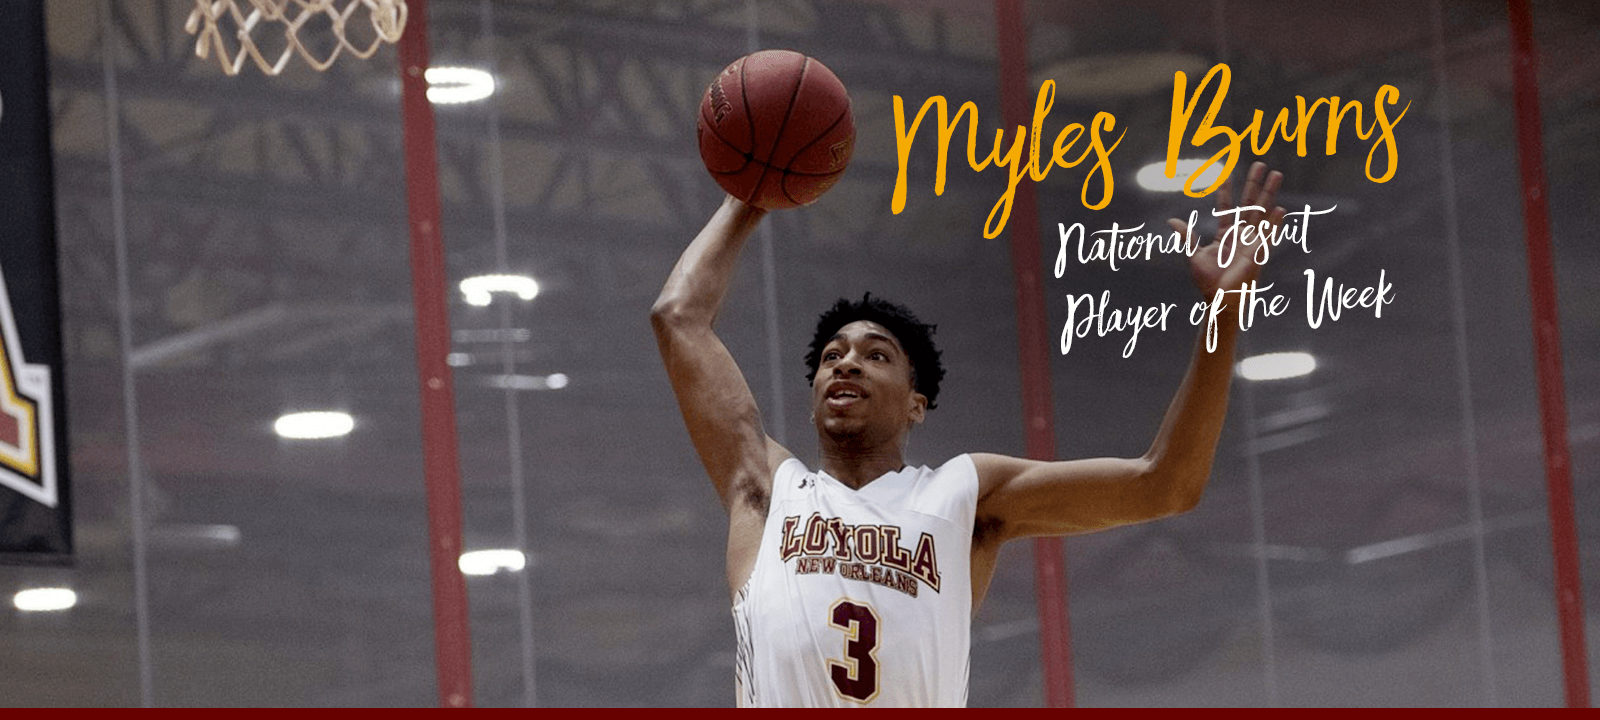 Mass Communication visual communication senior Myles Burns named National Jesuit Player of the Week